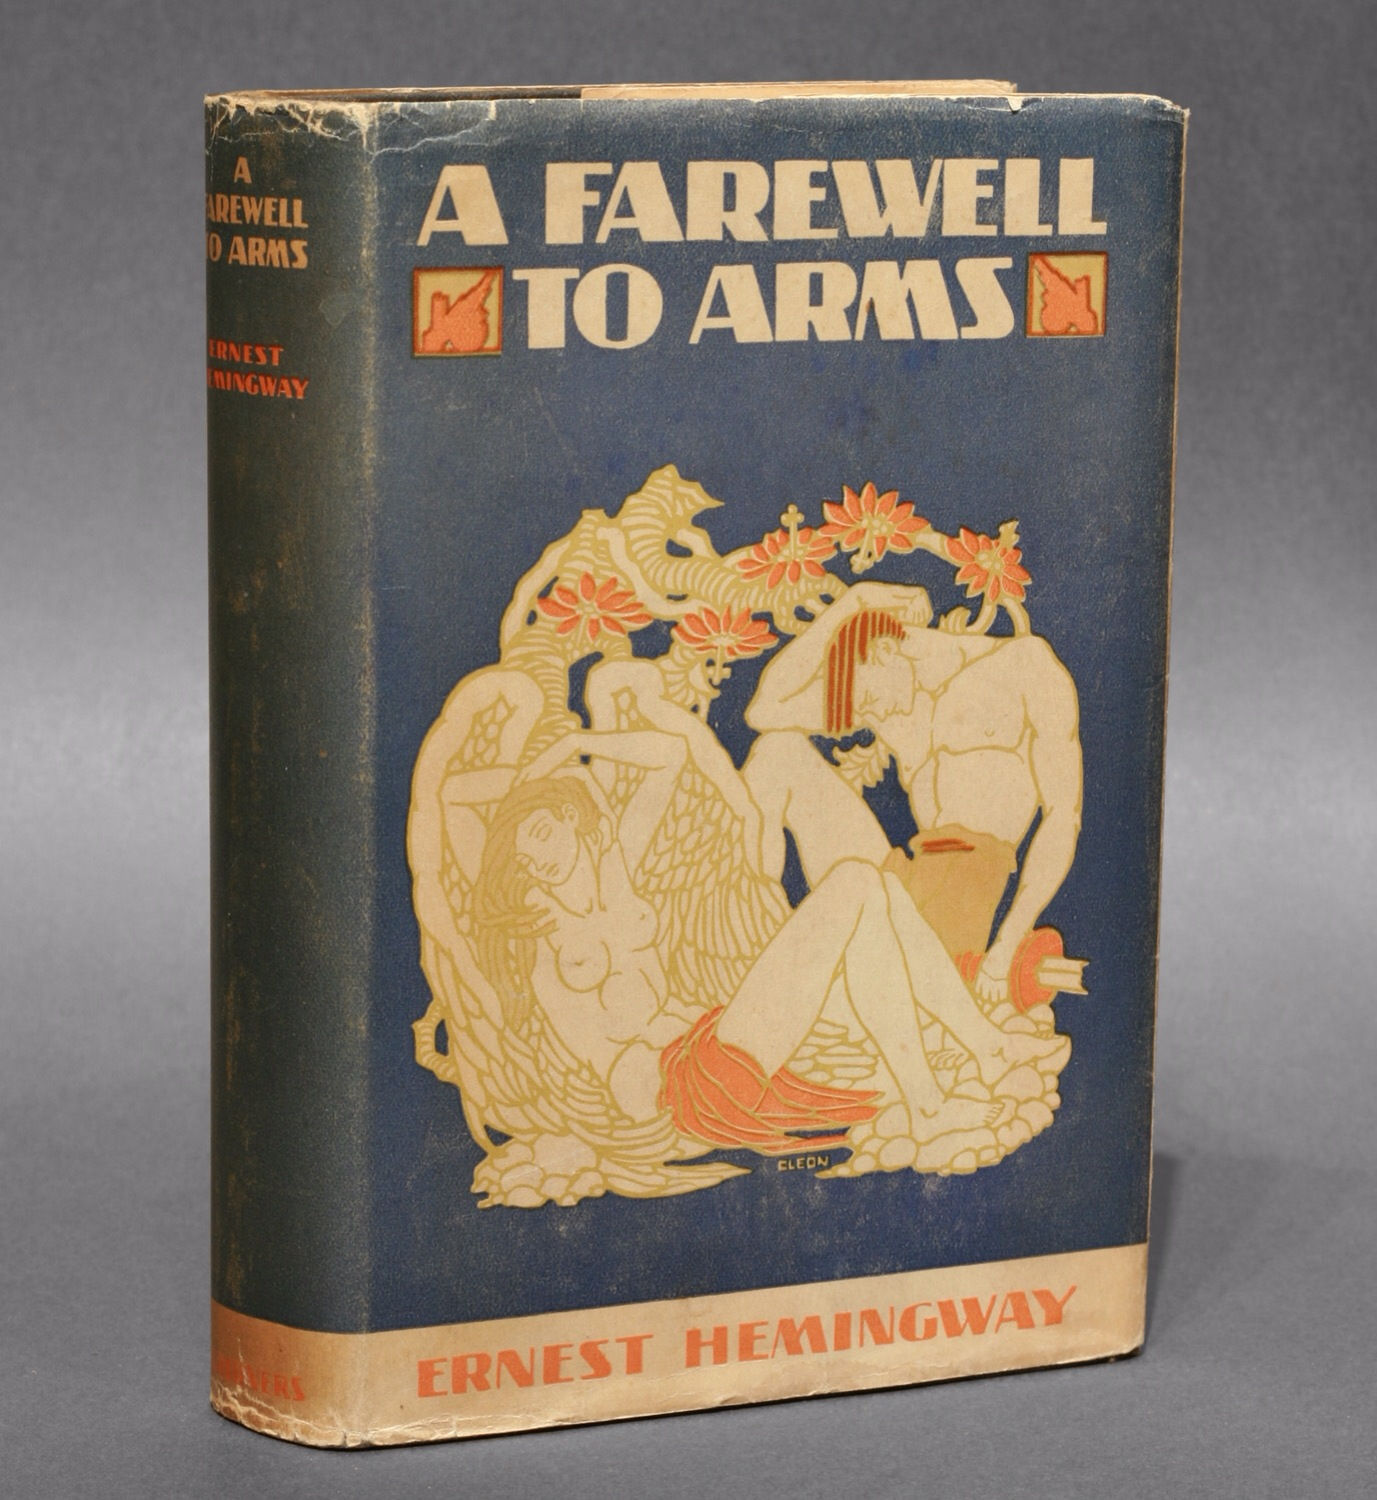 a farewell to arms symbolism essay Symbols of a farewell to arms essays: over 180,000 symbols of a farewell to arms essays, symbols of a farewell to arms term papers, symbols of a farewell to arms research paper, book reports 184 990 essays, term and research papers available for unlimited access.